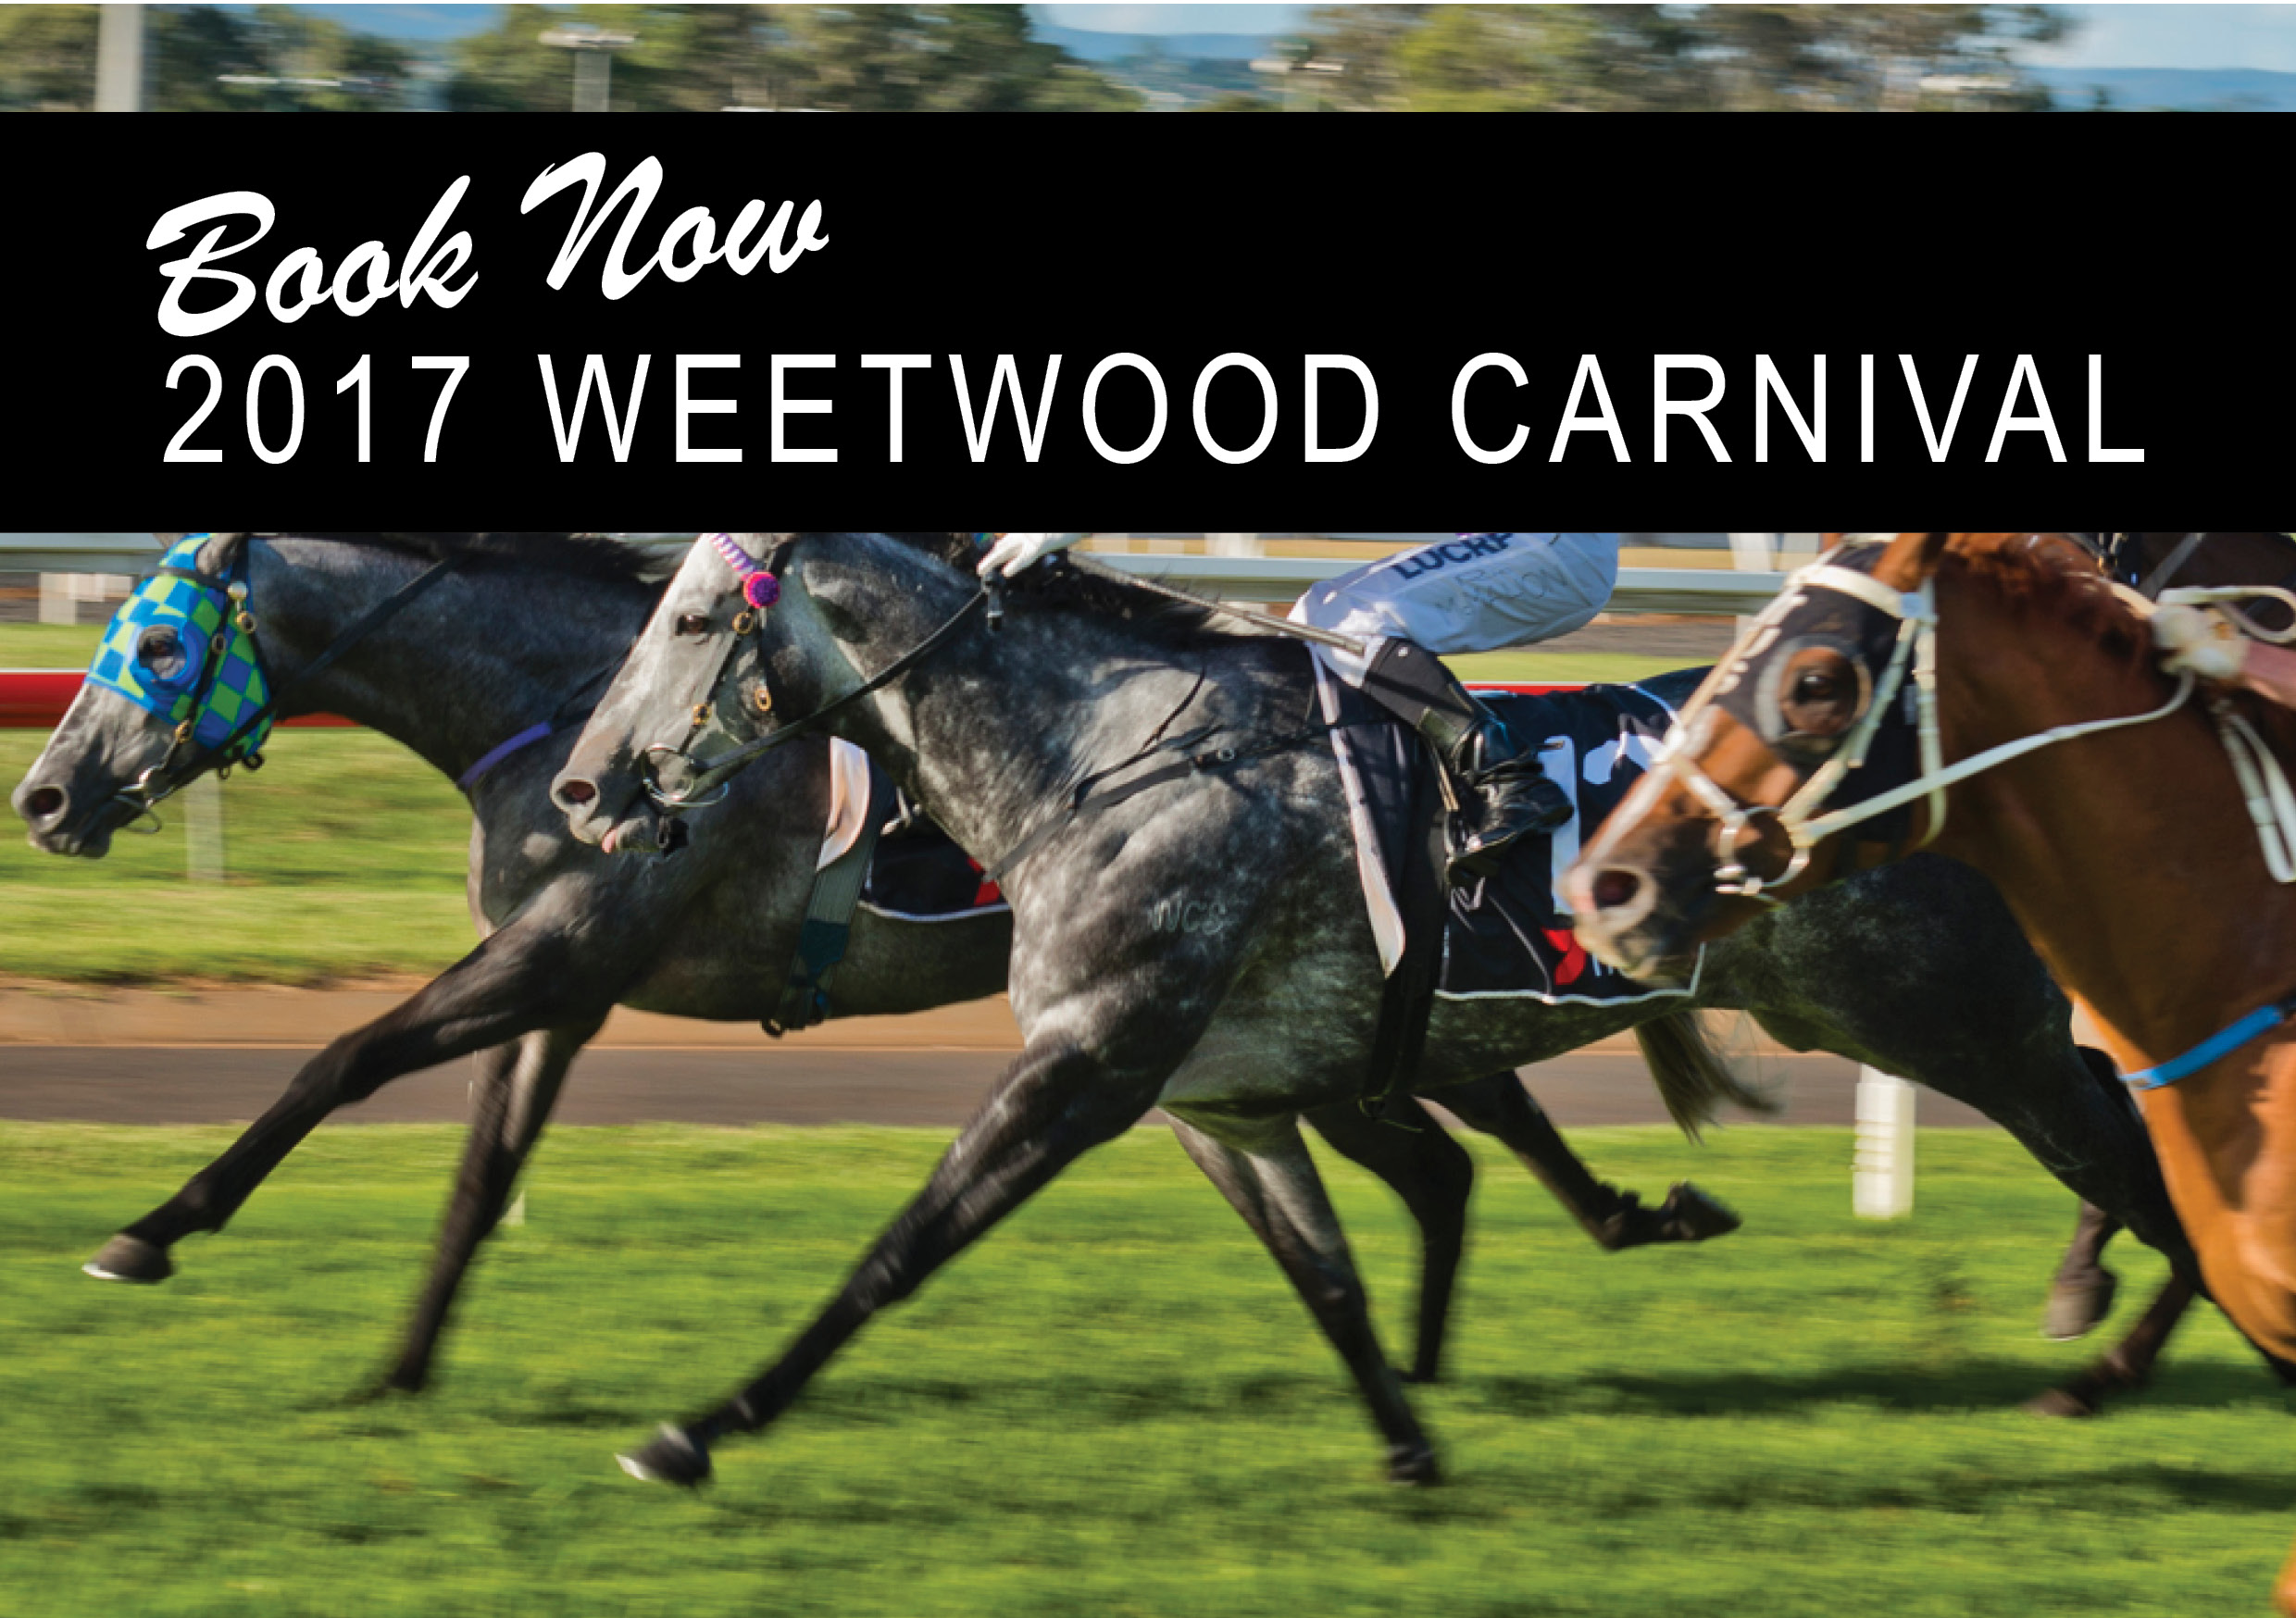 2017 Weetwood Carnival